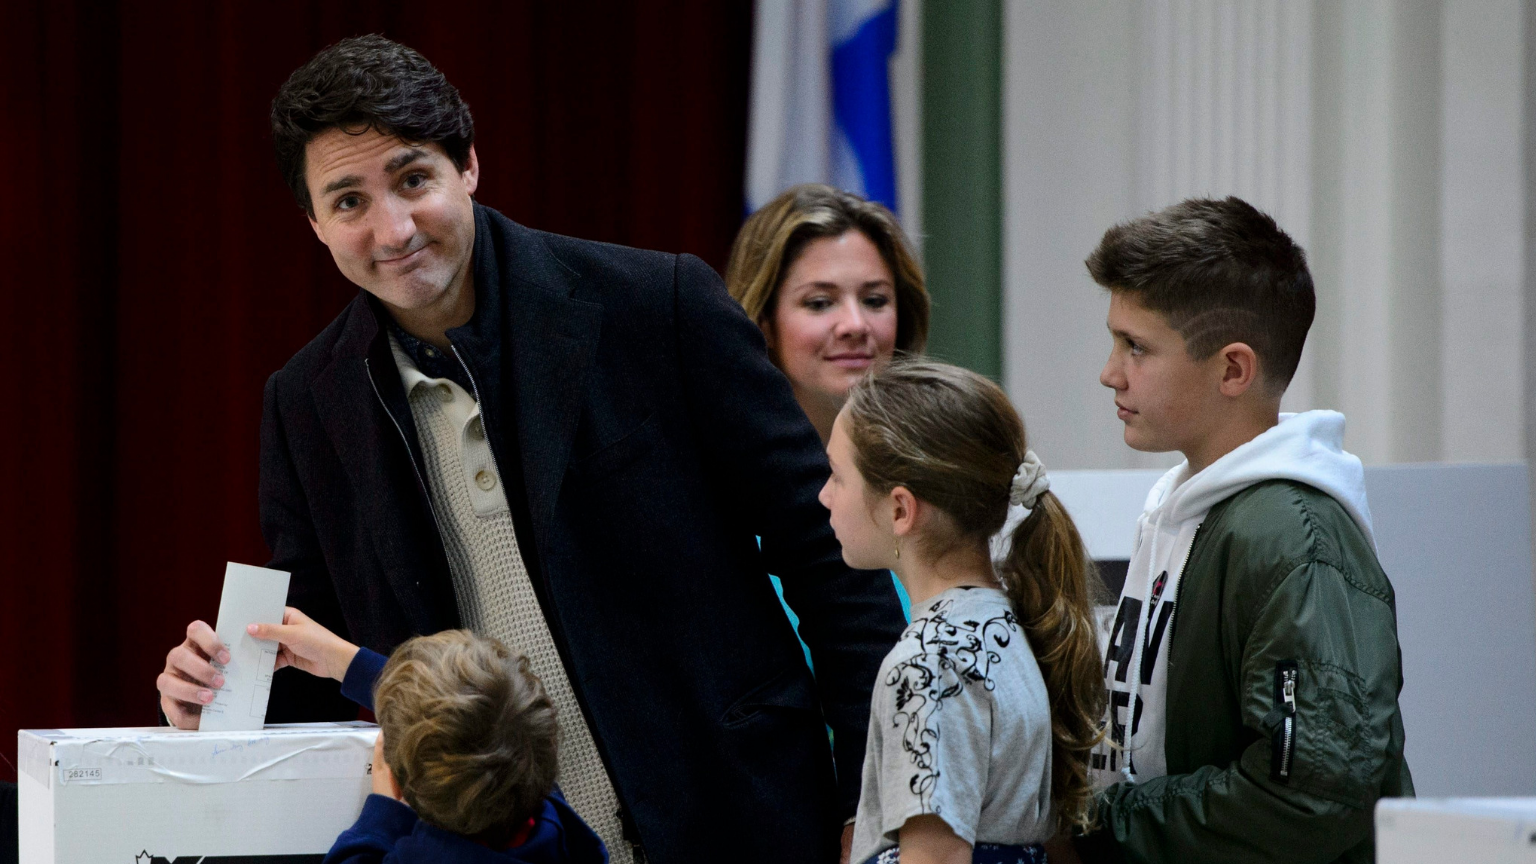 Canada Election Live: Take A Look Behind The Scenes With HuffPost